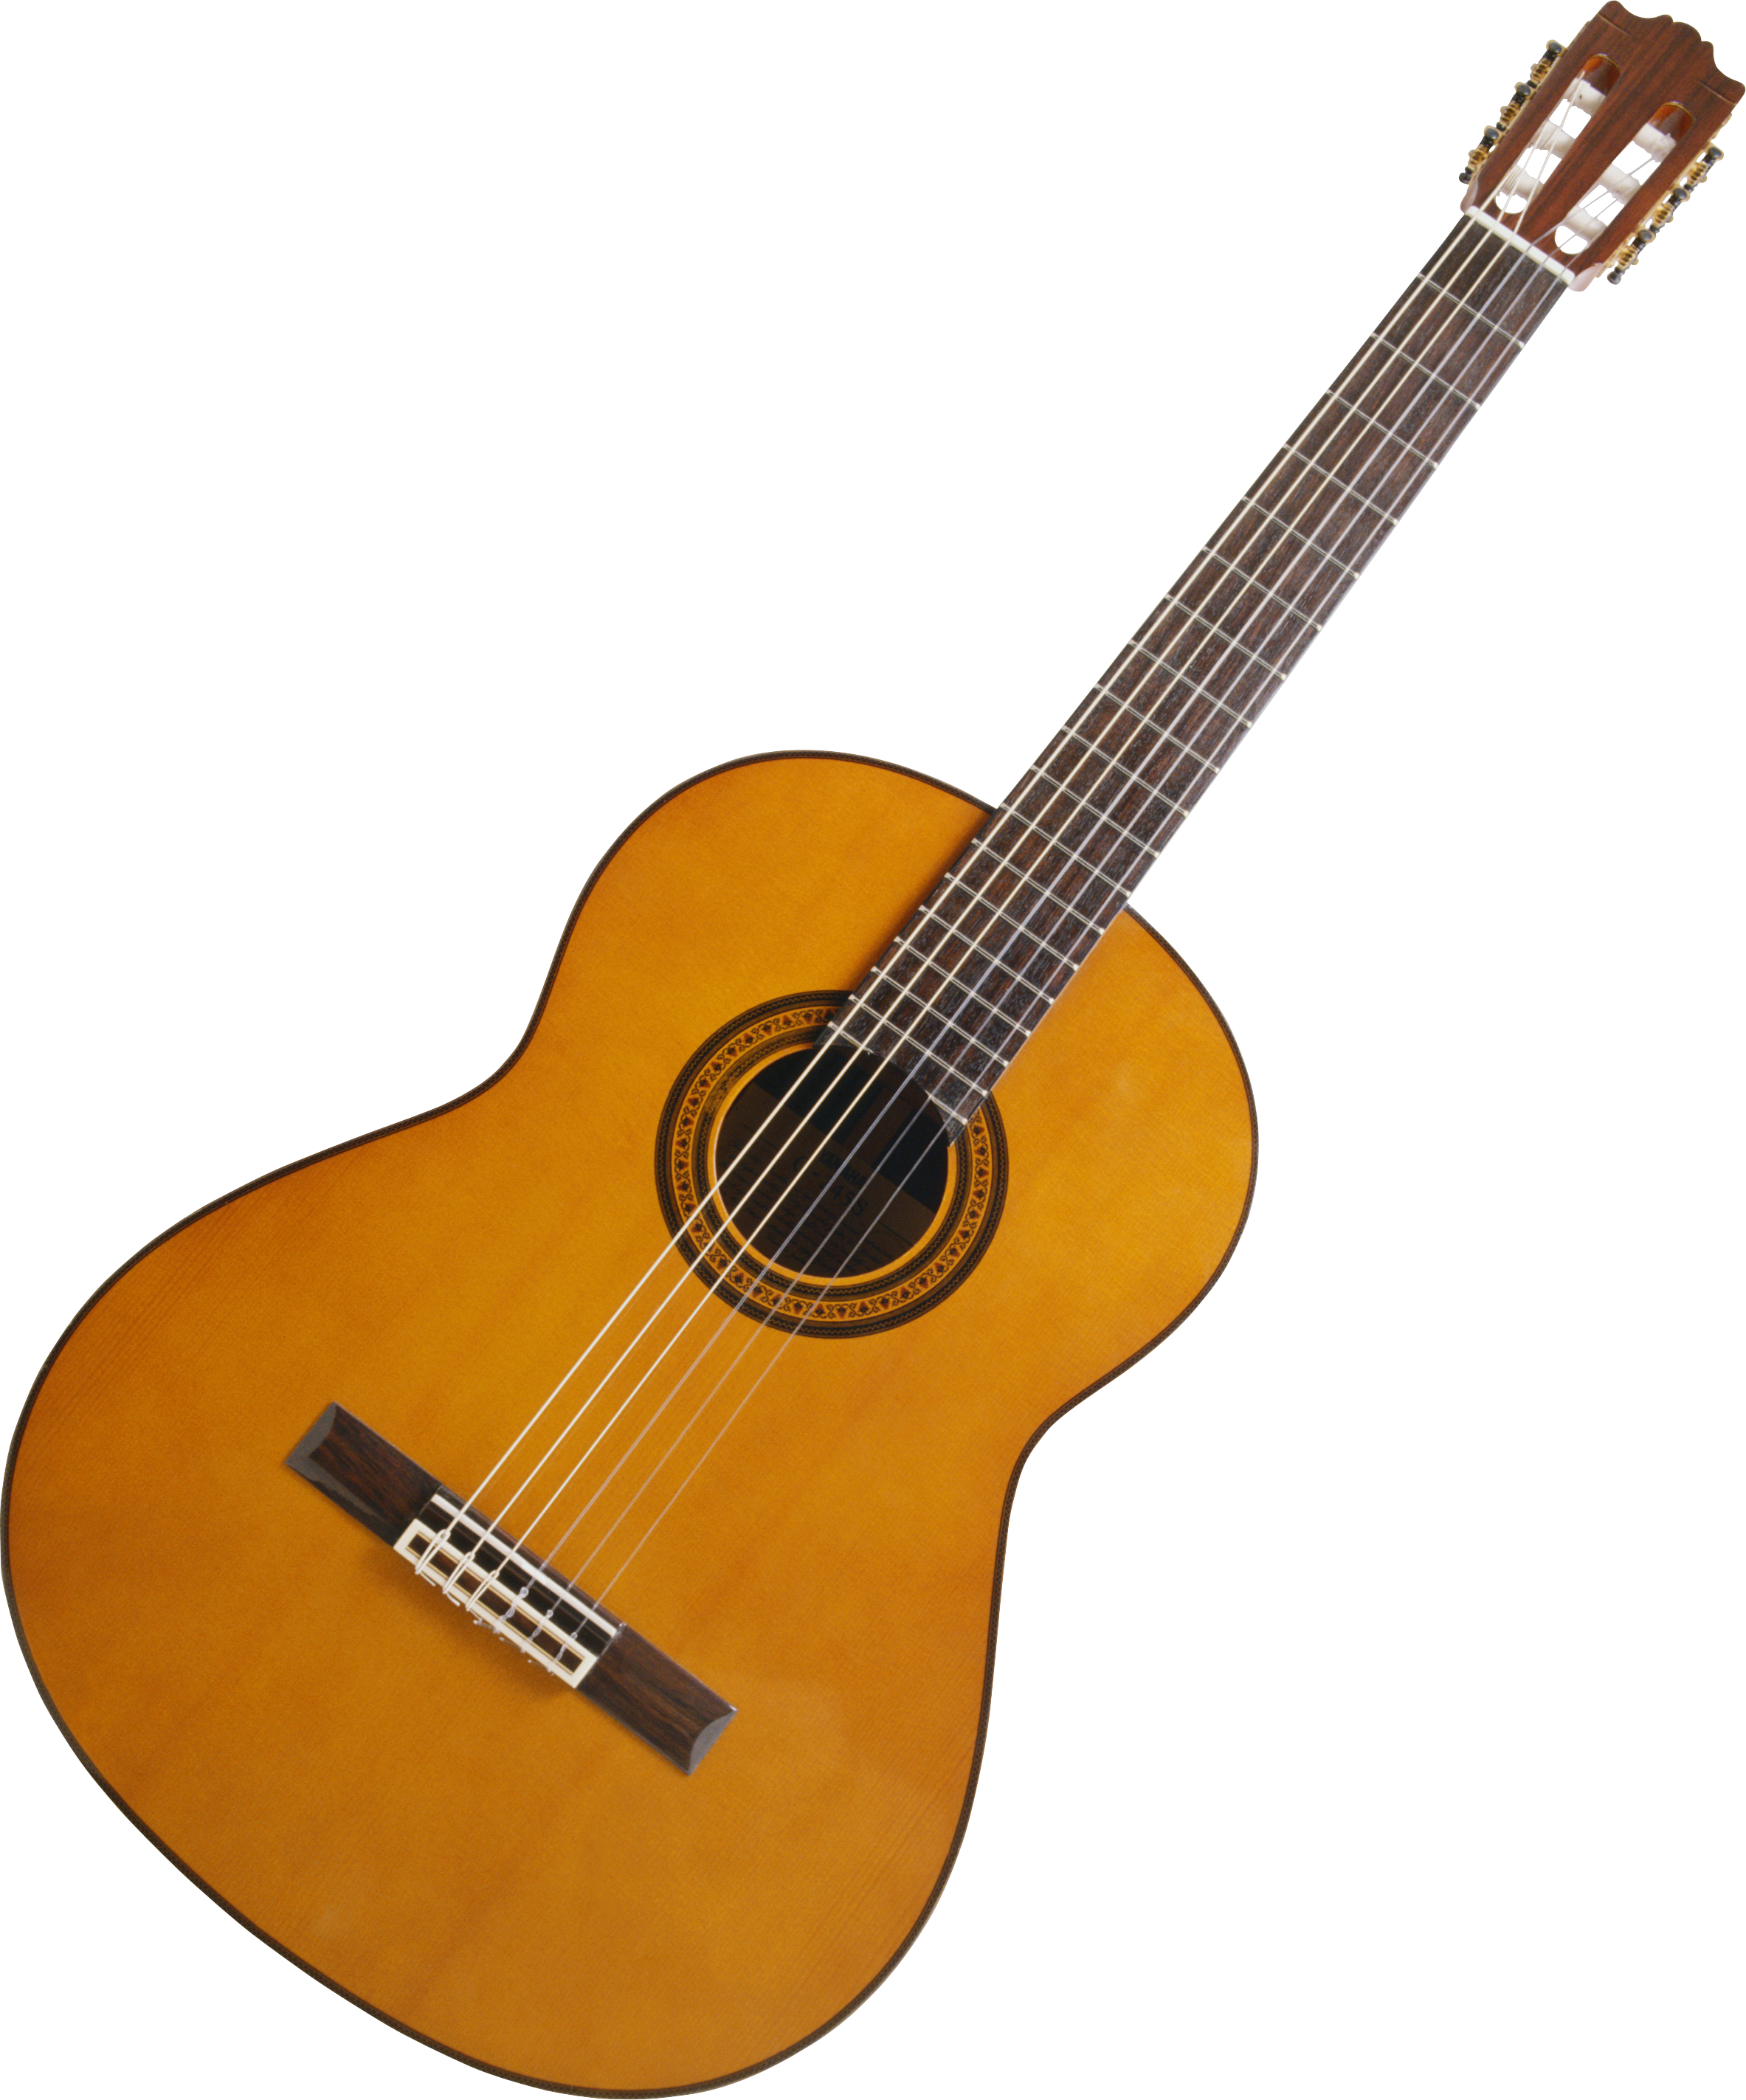 Picture of guitar